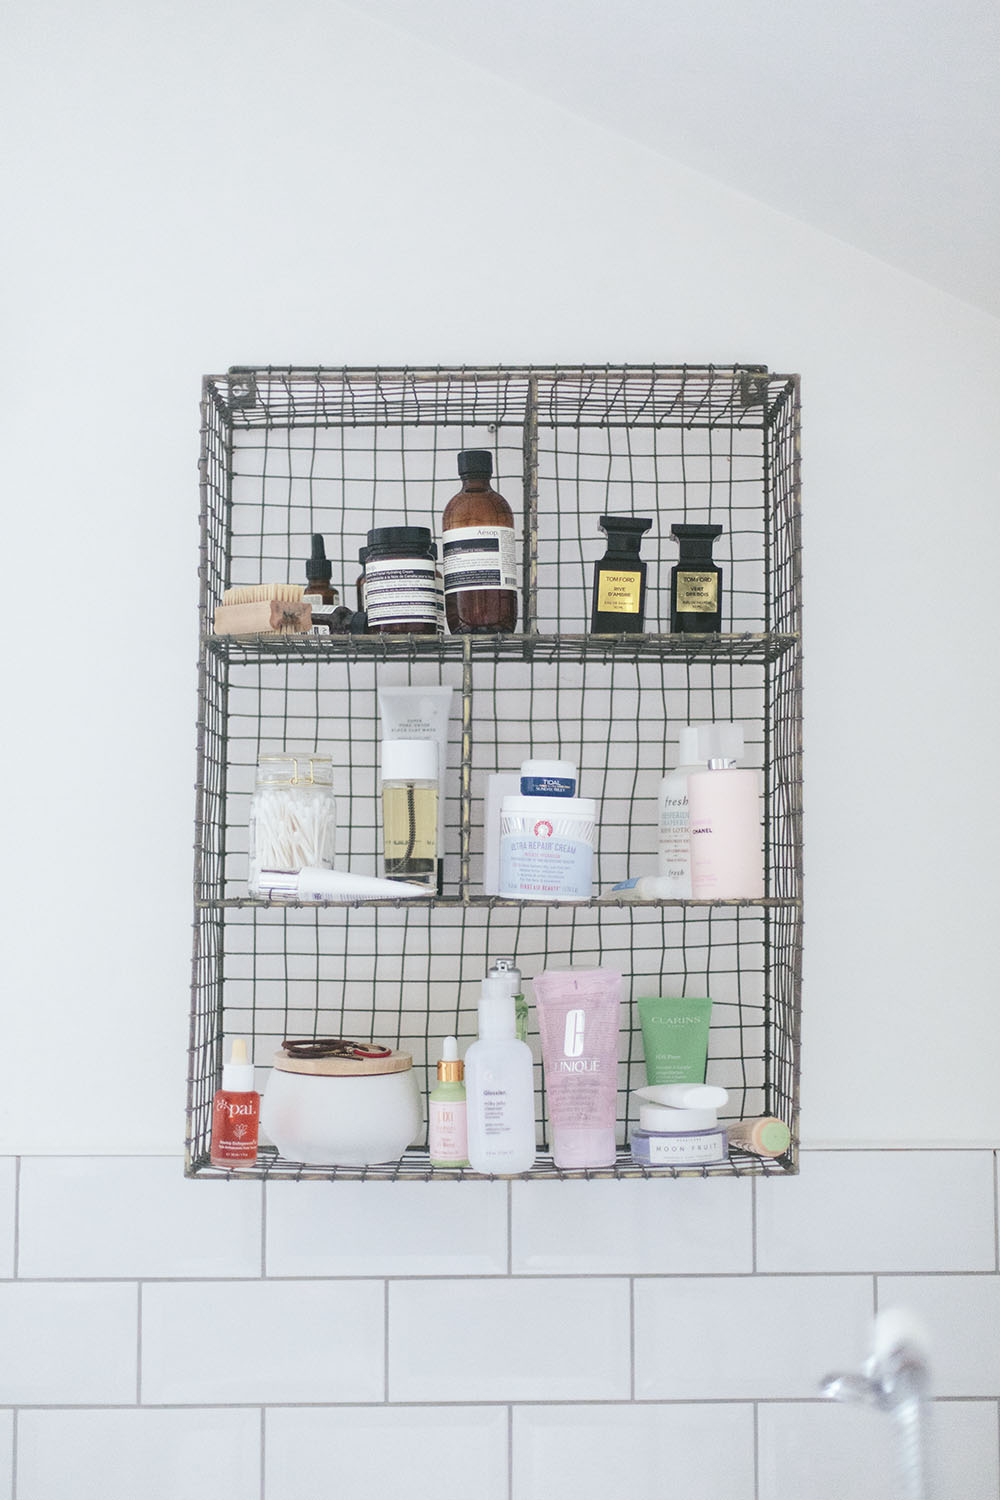 A wire shelf in a bathroom on a white tiled wall